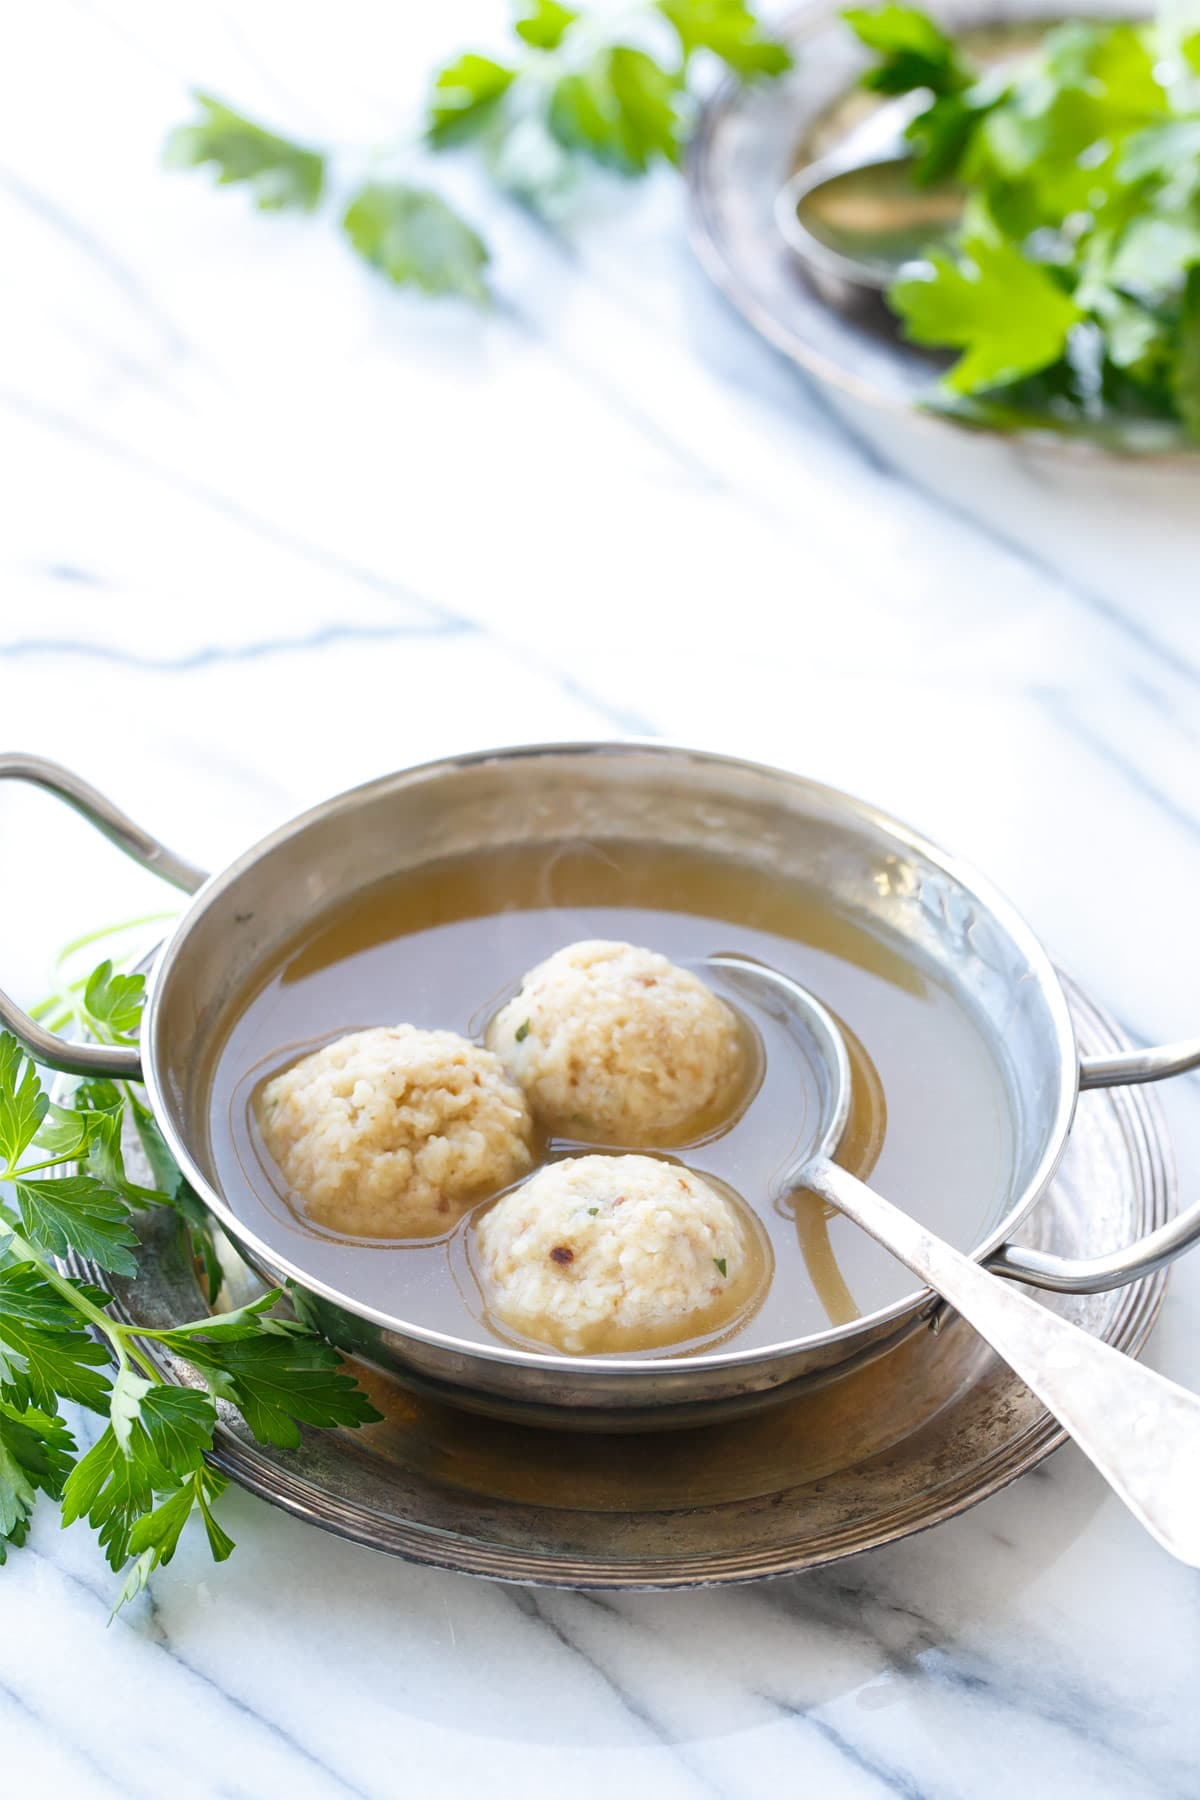 Traditional Matzo Ball Soup Recipe for Passover